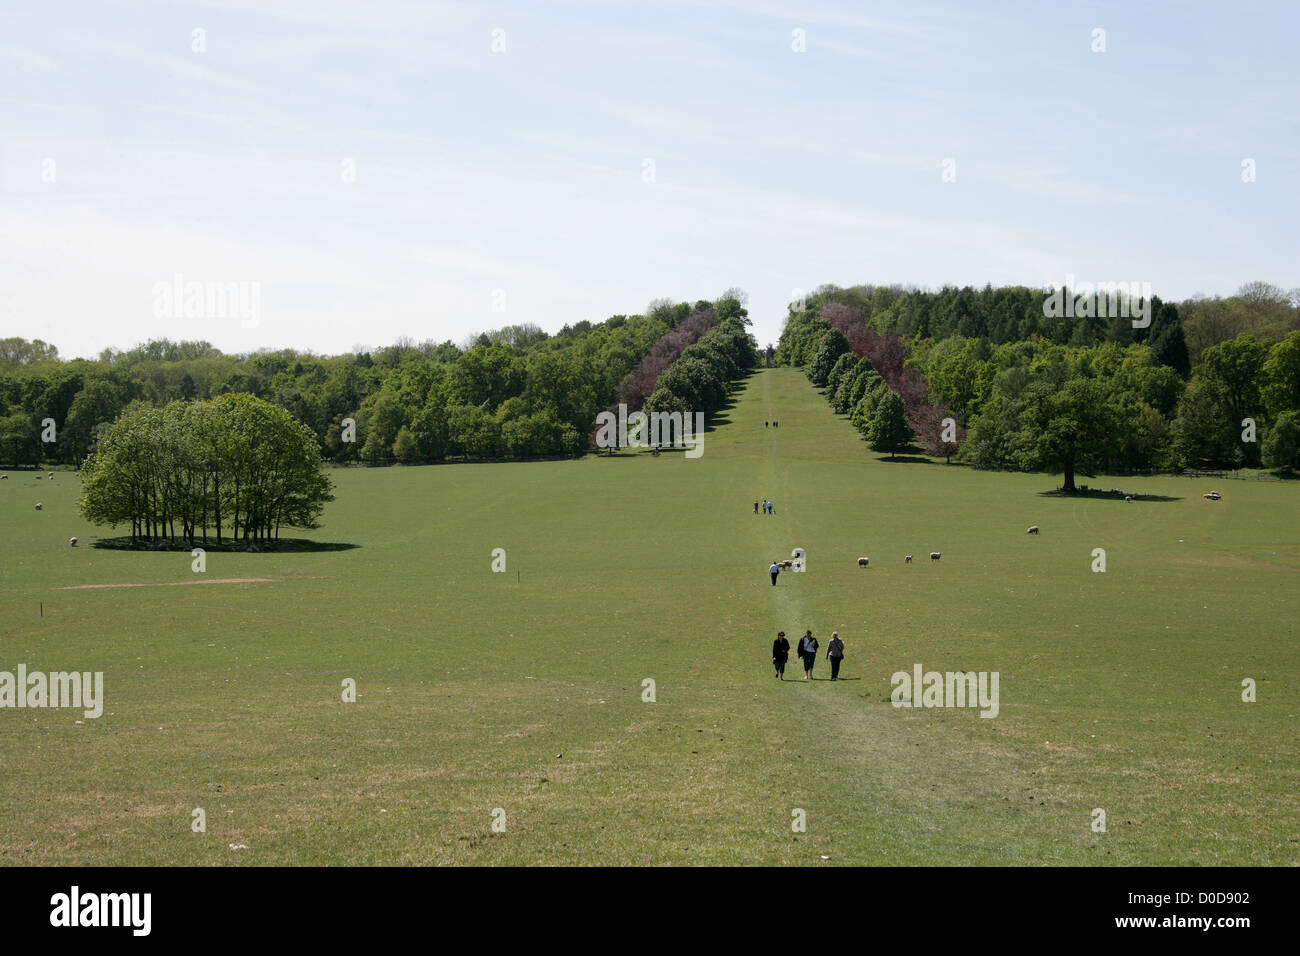 View of the Walkway to the Monument from Ragley Hall, Warwickshire, UK. Stock Photo